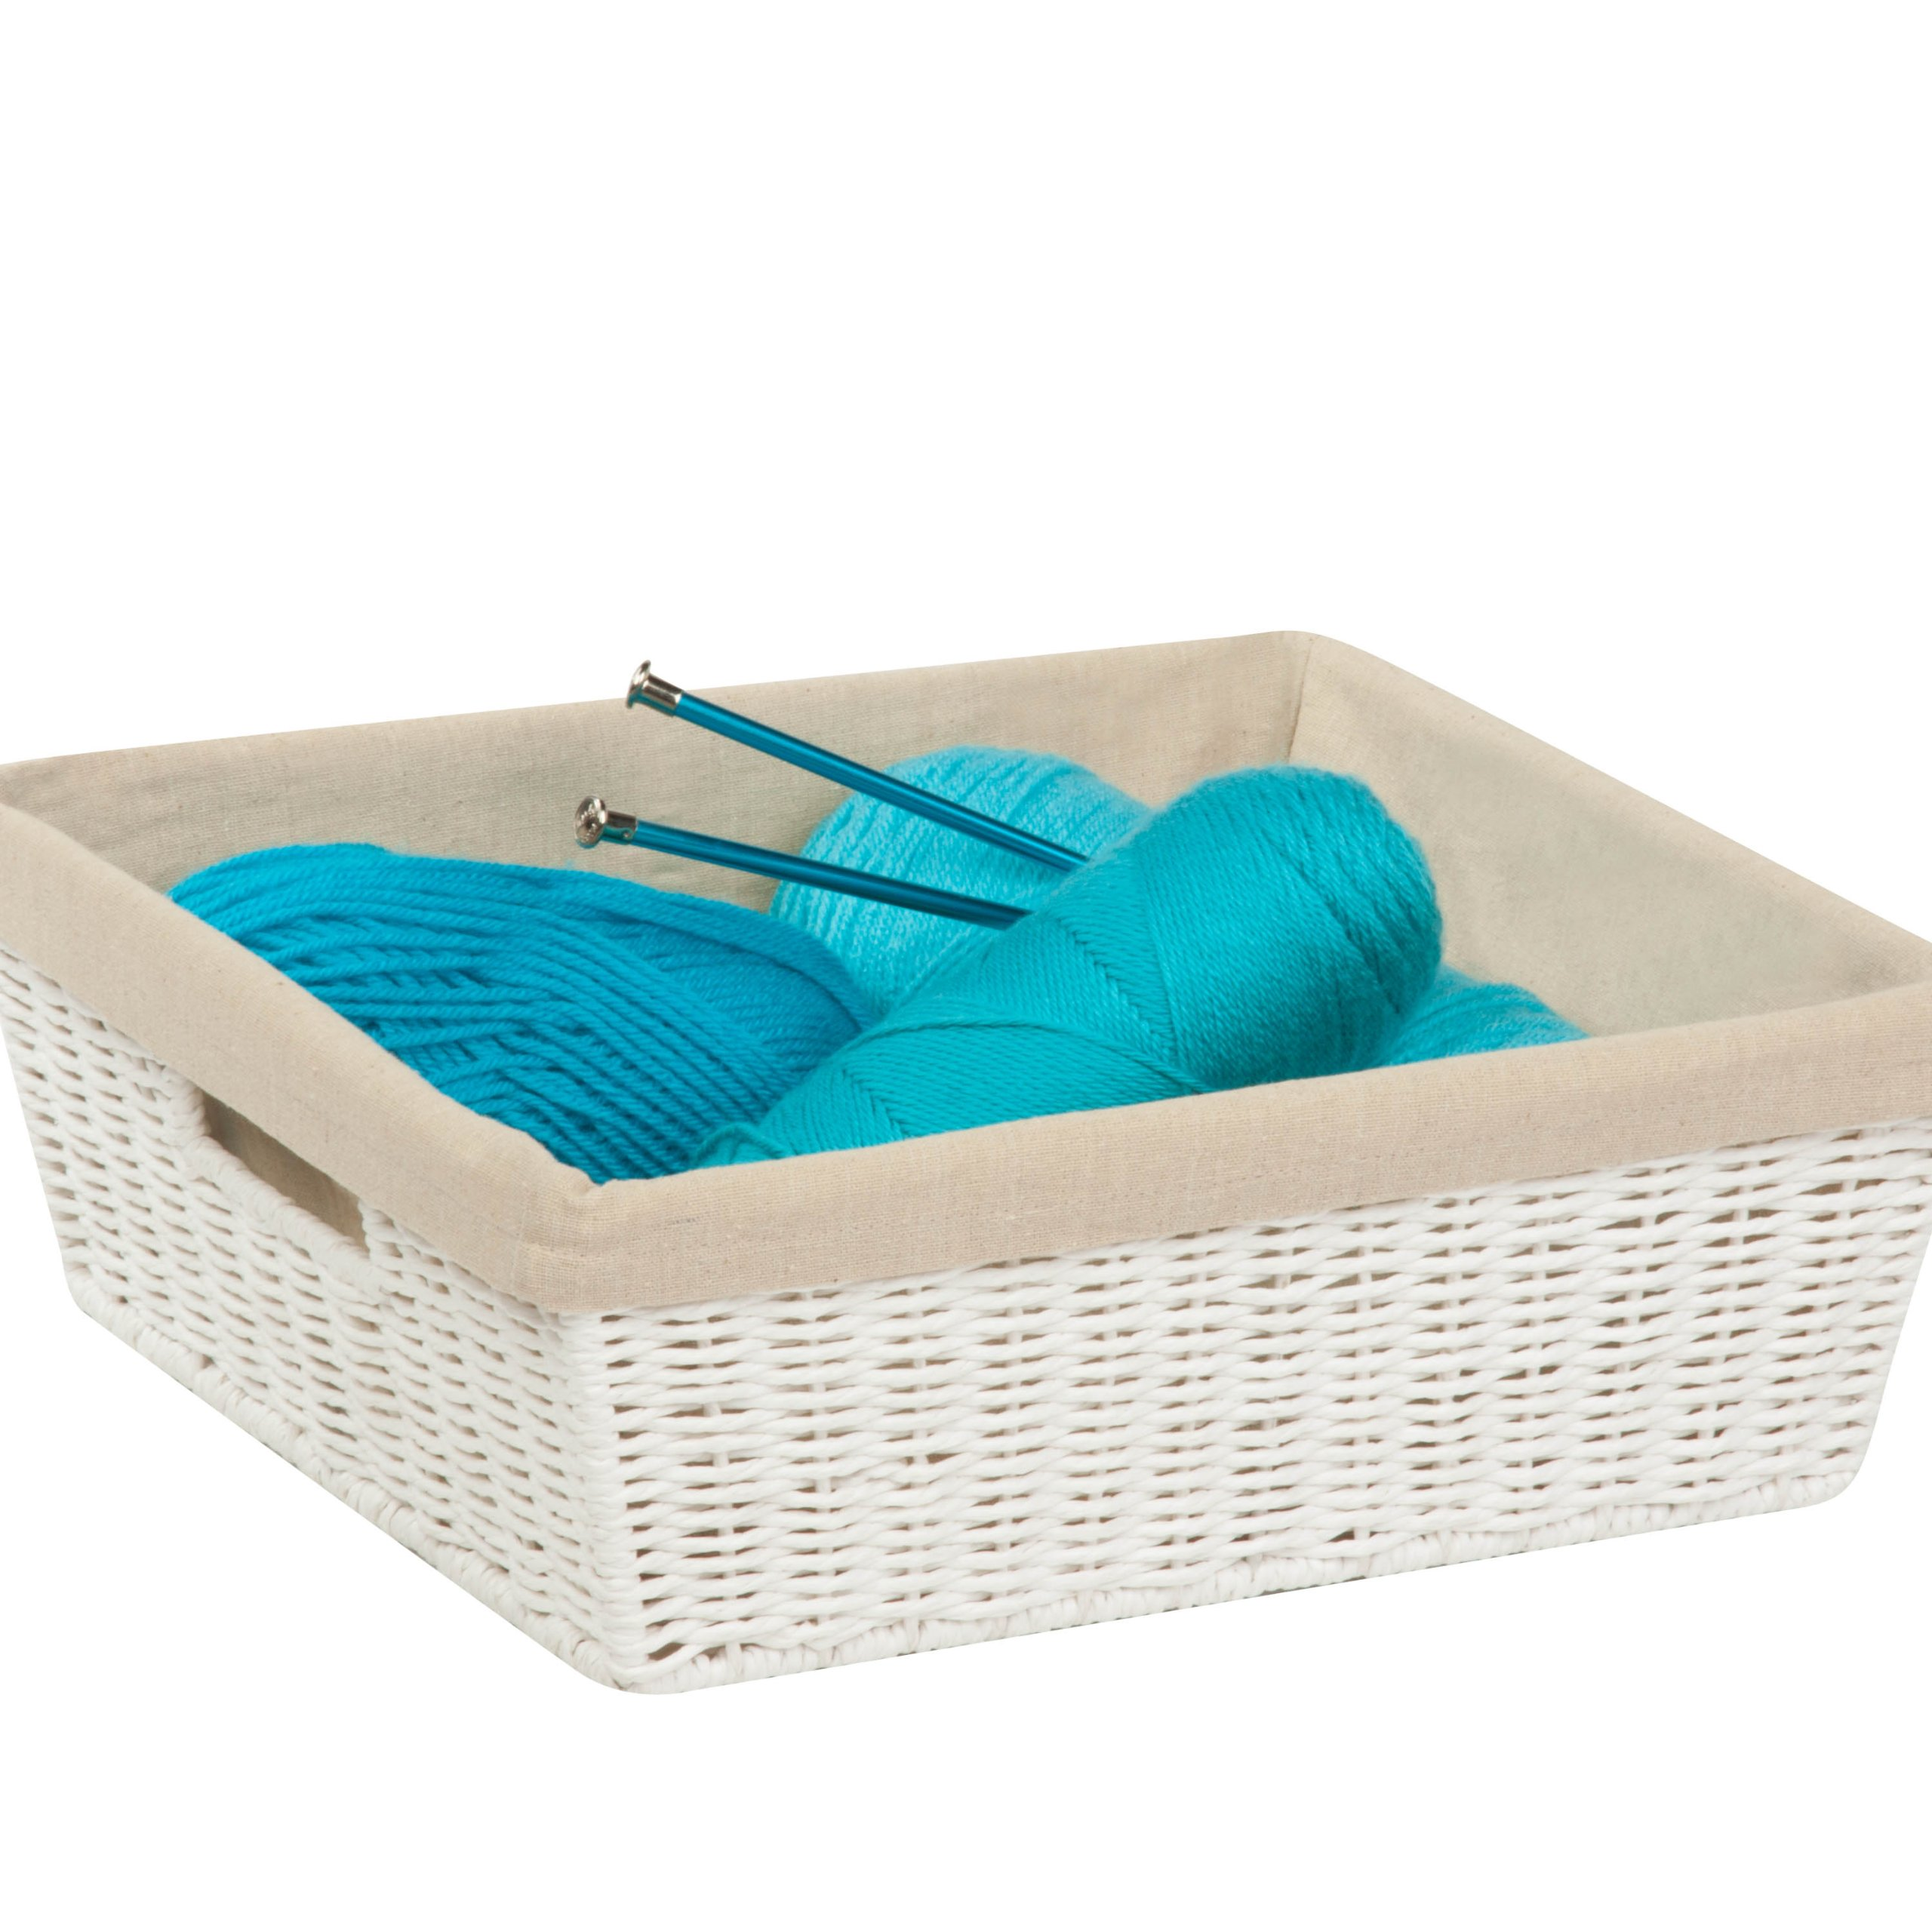 Honey-Can-Do STO-03559 Parchment Cord Basket with Handles and Liner, White, 13 x 15 x 5 inches